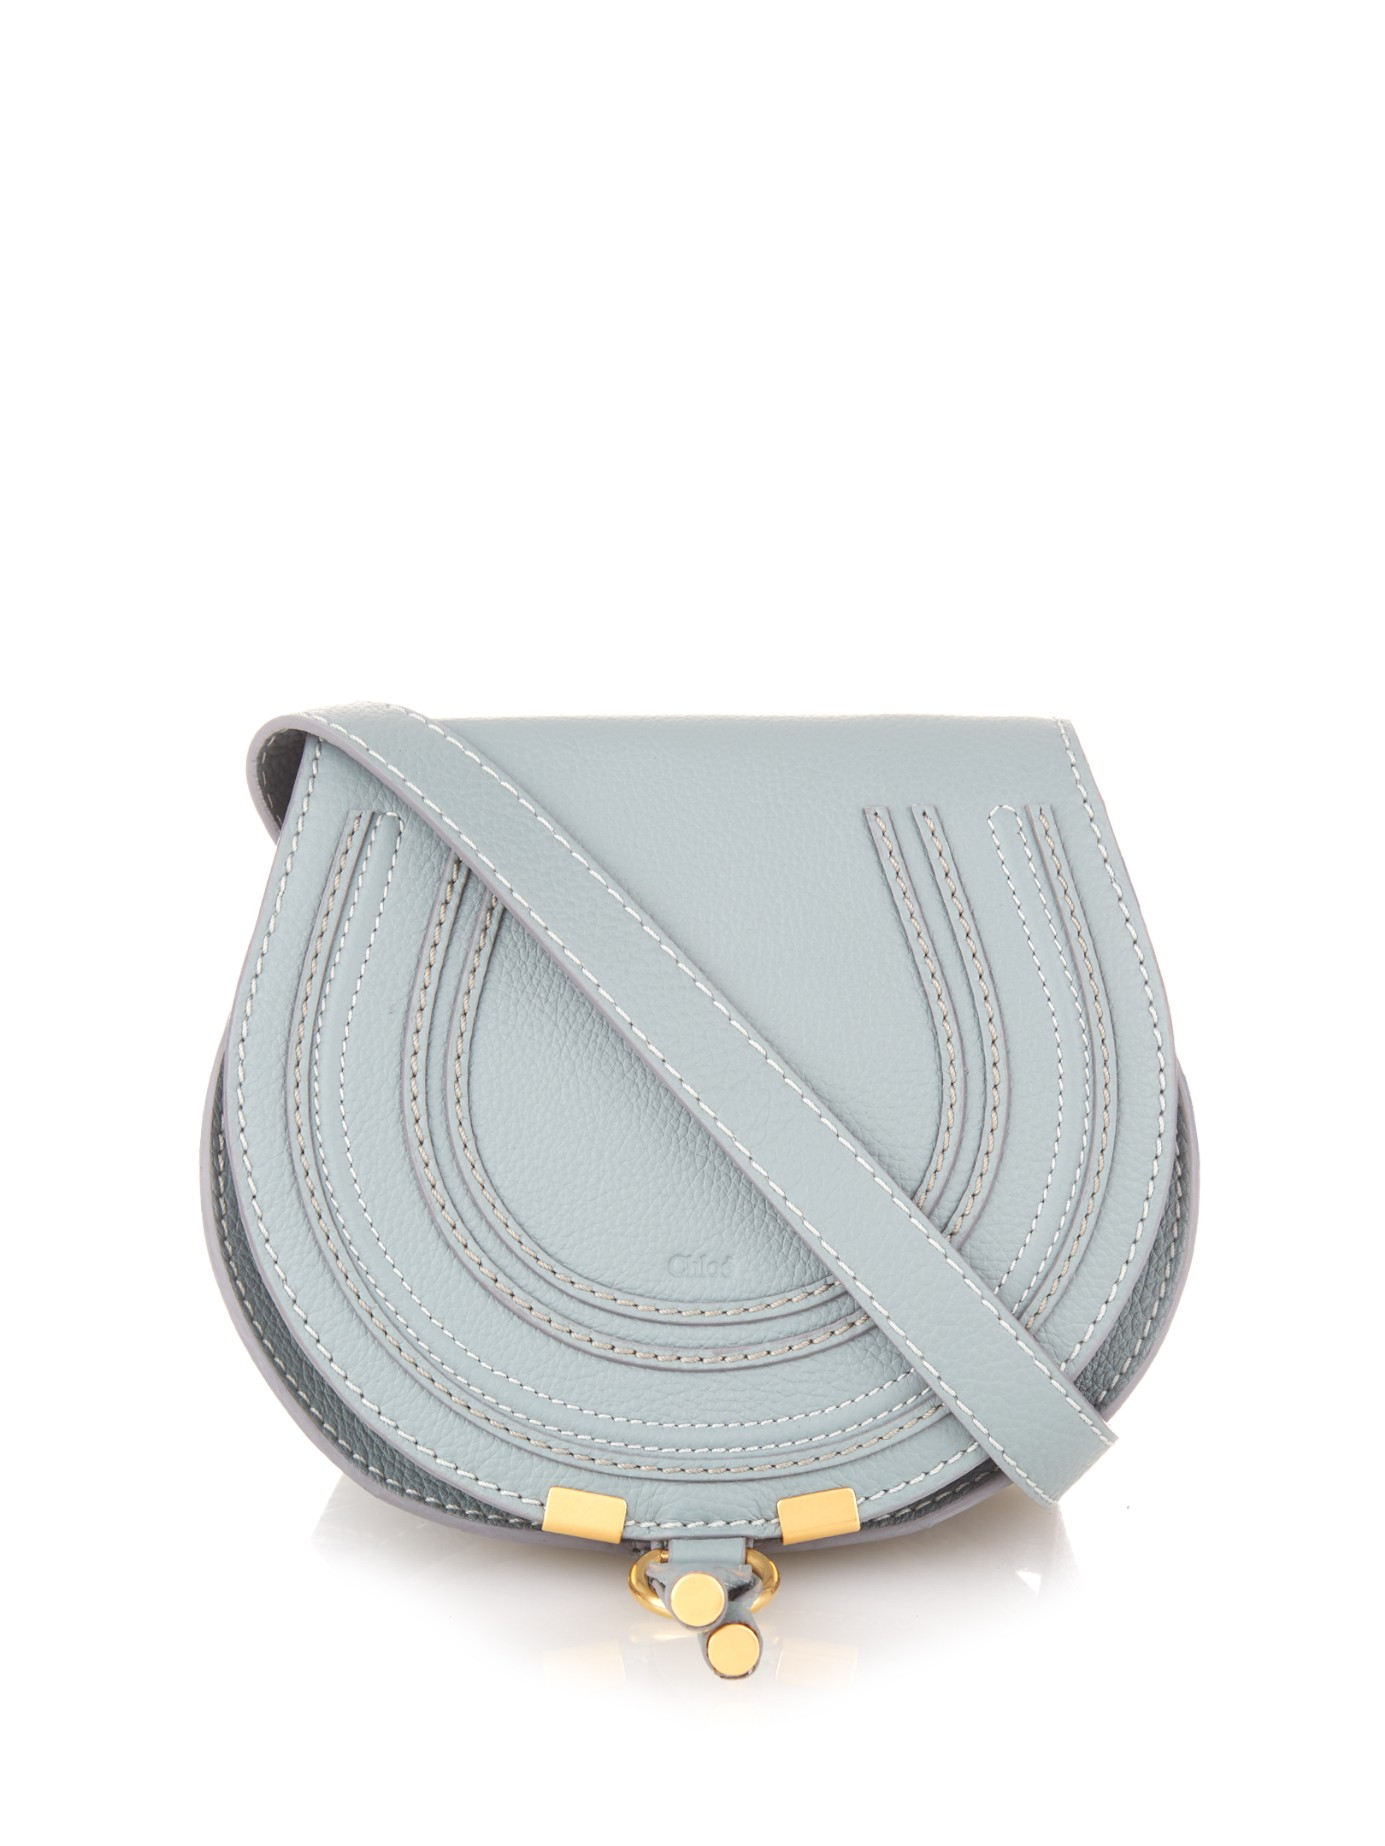 ed262021f7 Lyst - Chloé Marcie Mini Leather Cross-body Bag in Blue